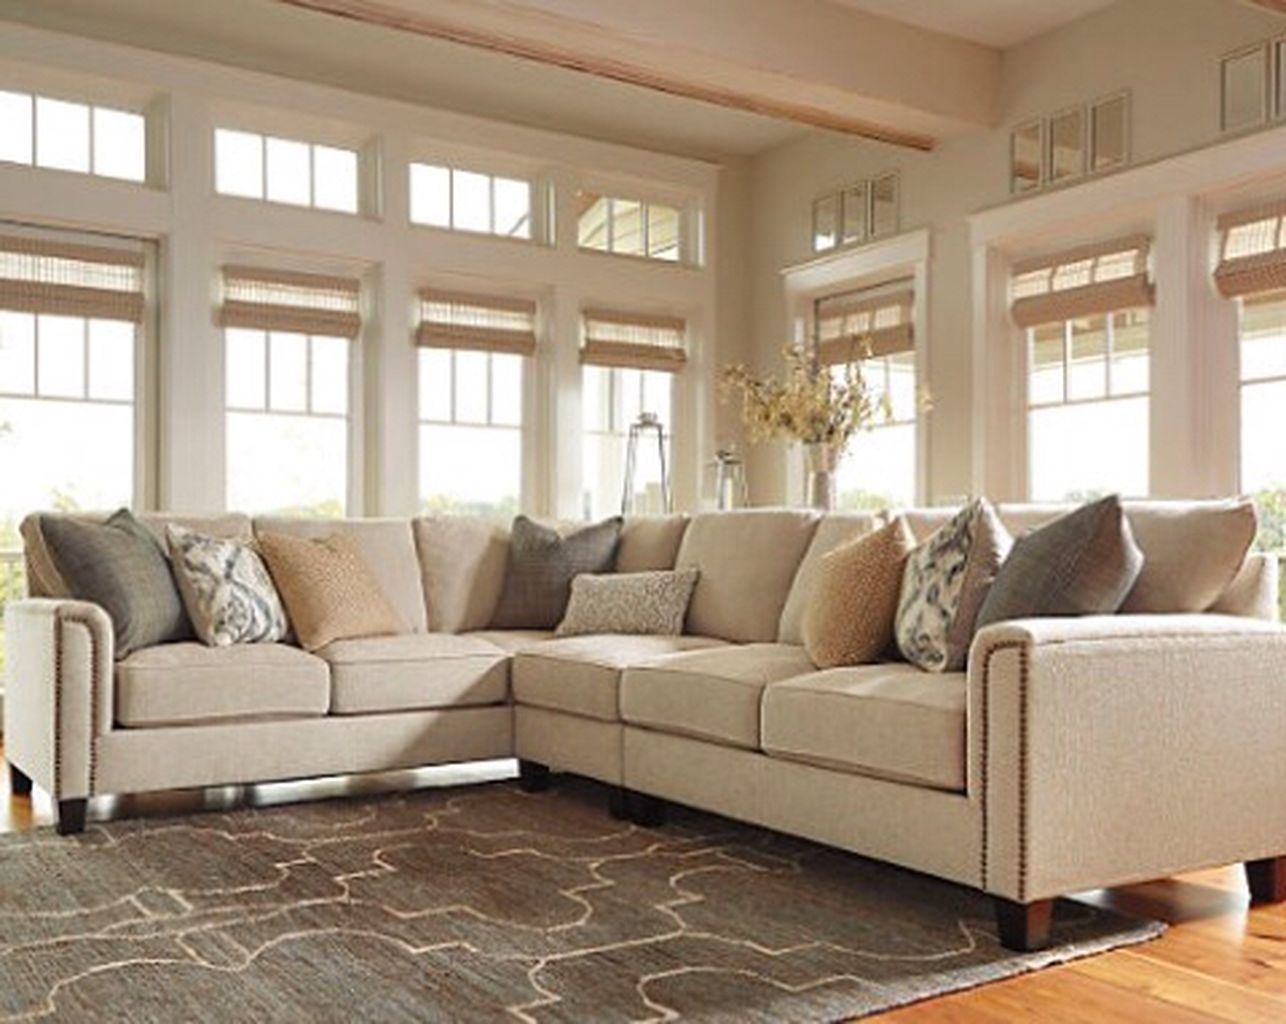 awesome 99 comfortable ashley sectional sofa ideas for living room more at http